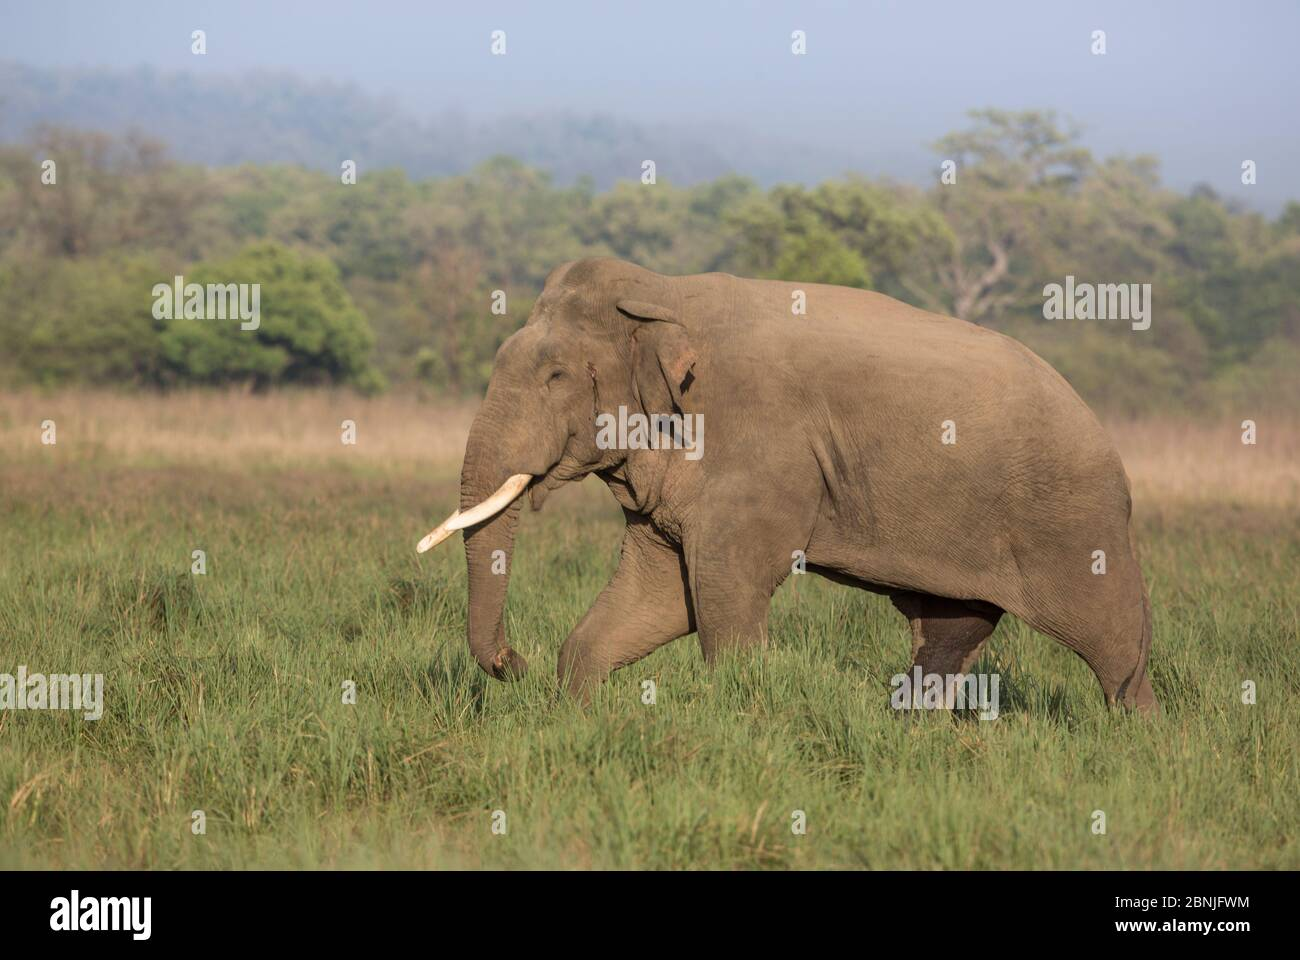 Asiatic elephant (Elephas maximus), male with musth secretion from temporal gland near ear visible. Jim Corbett National Park, India. Stock Photo